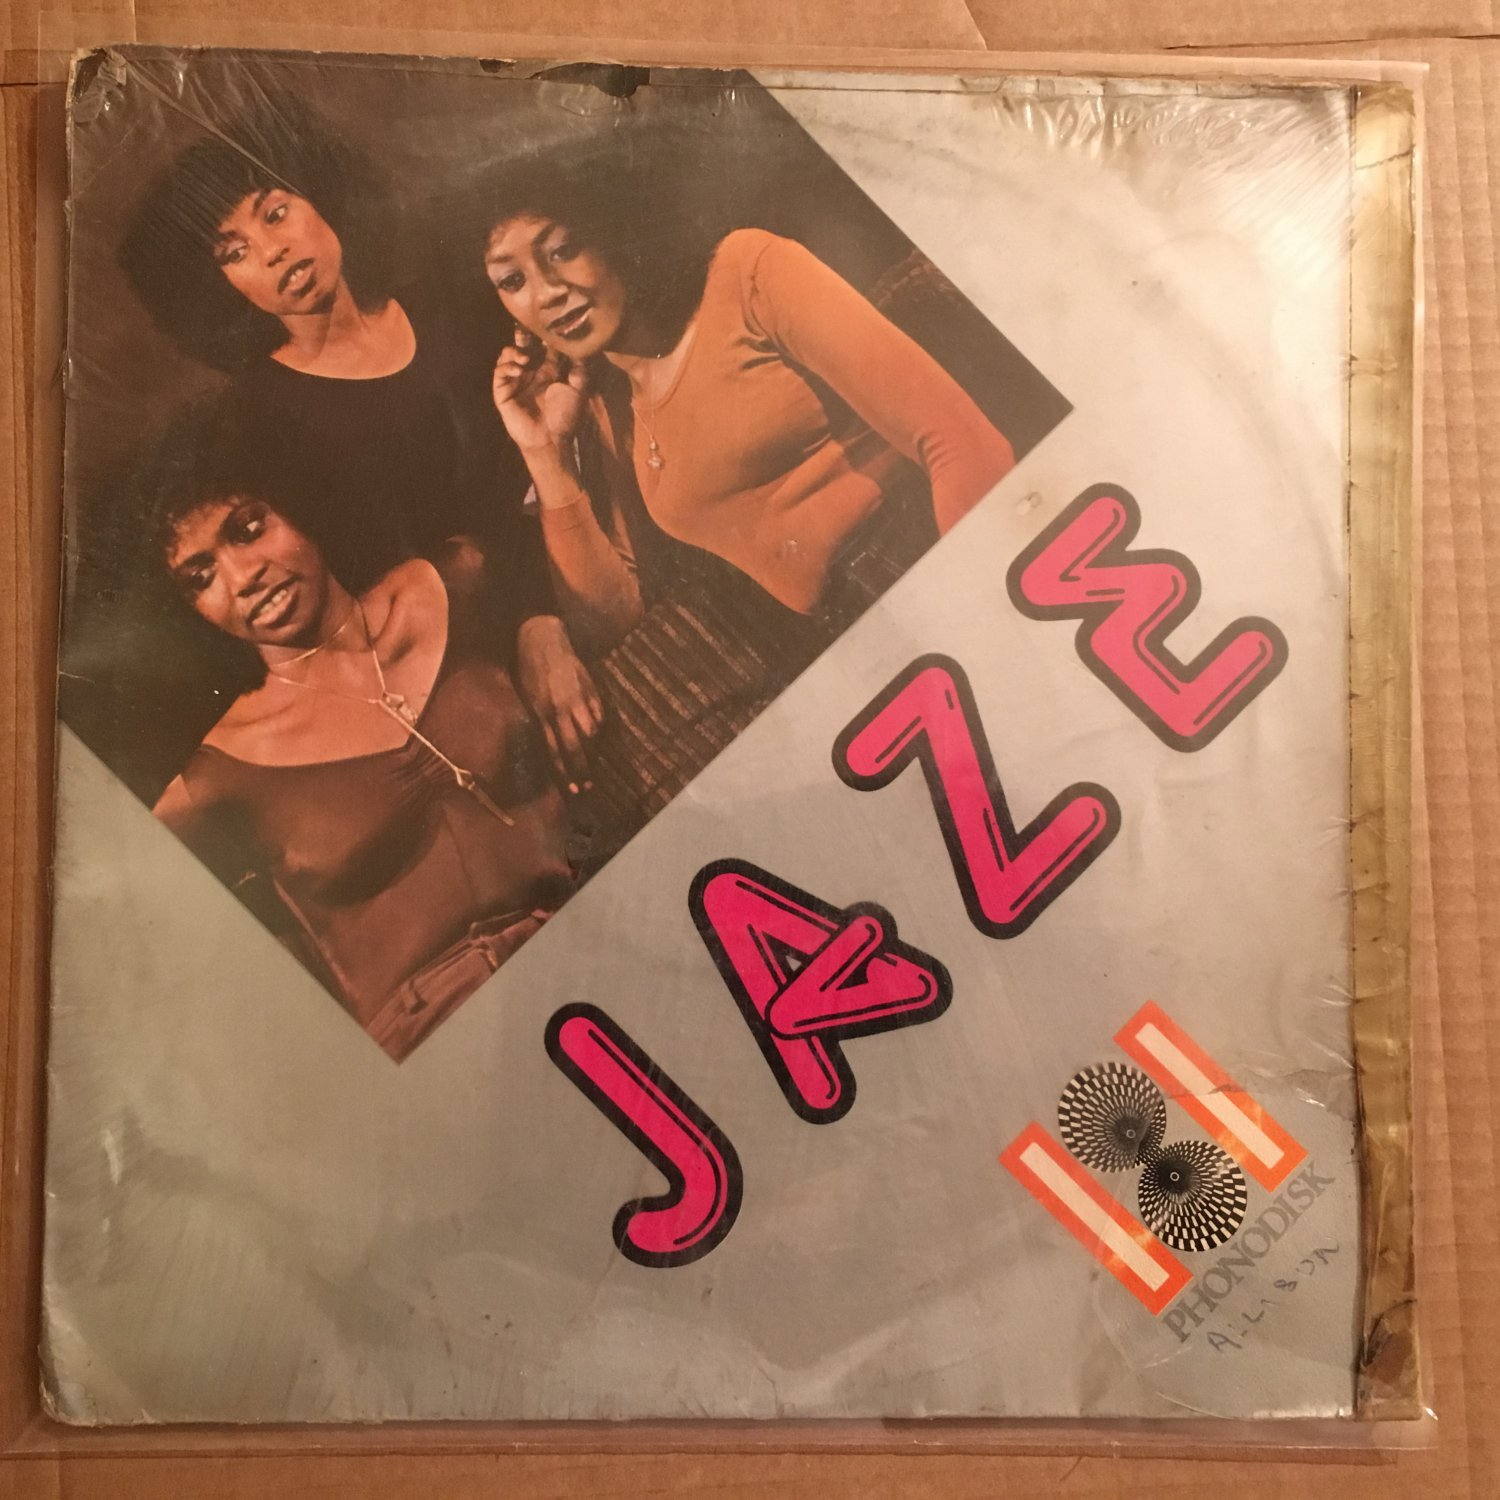 "JAZE 12"" we wanna get down with you DISCO FUNK BOOGIE mp3 LISTEN"